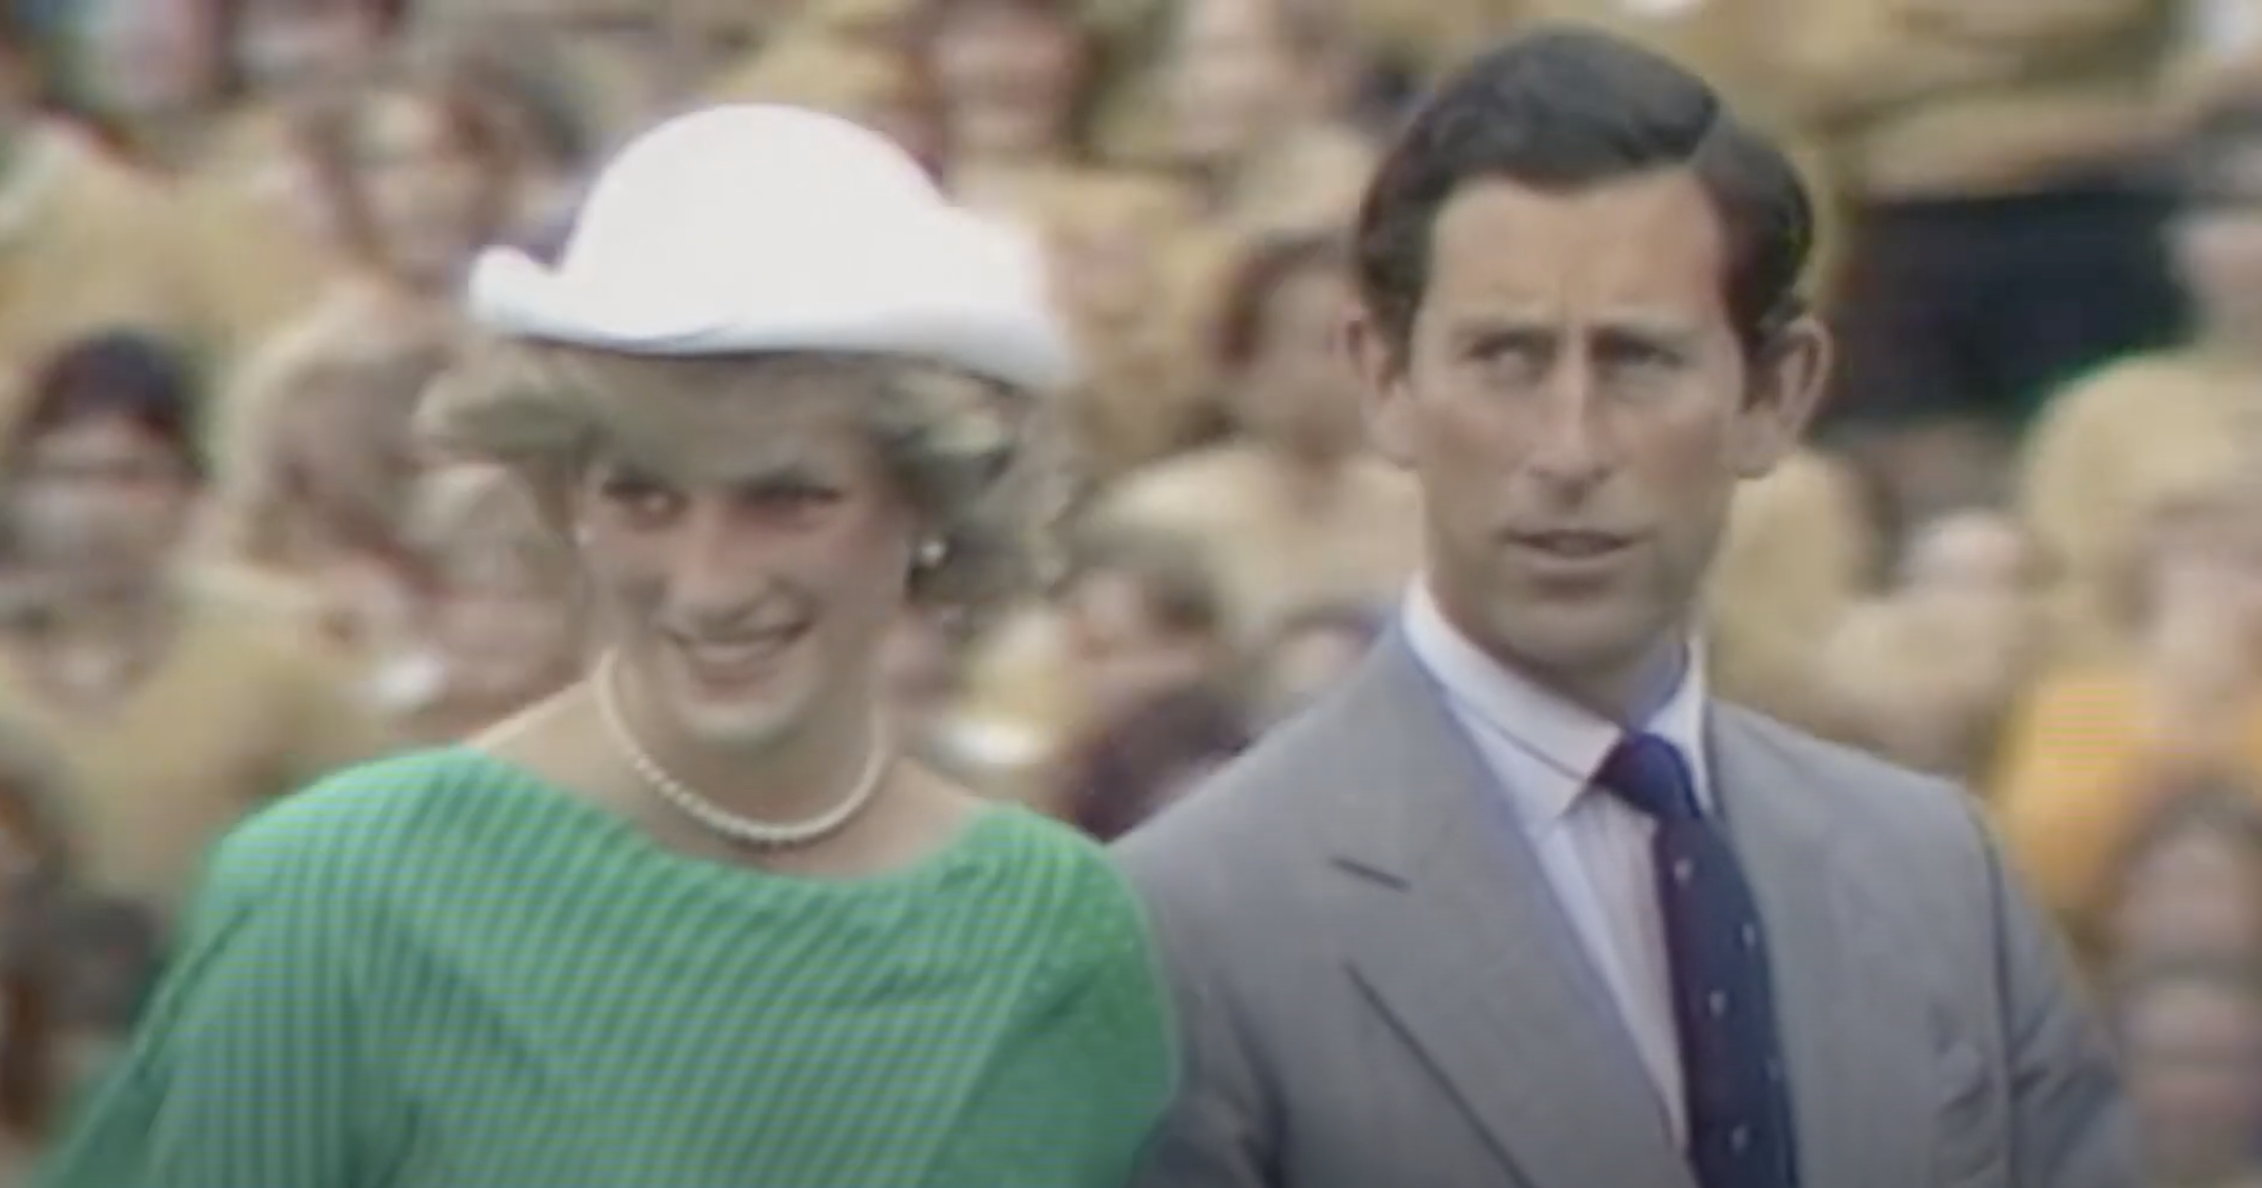 Diana and Charles arriving in Australia